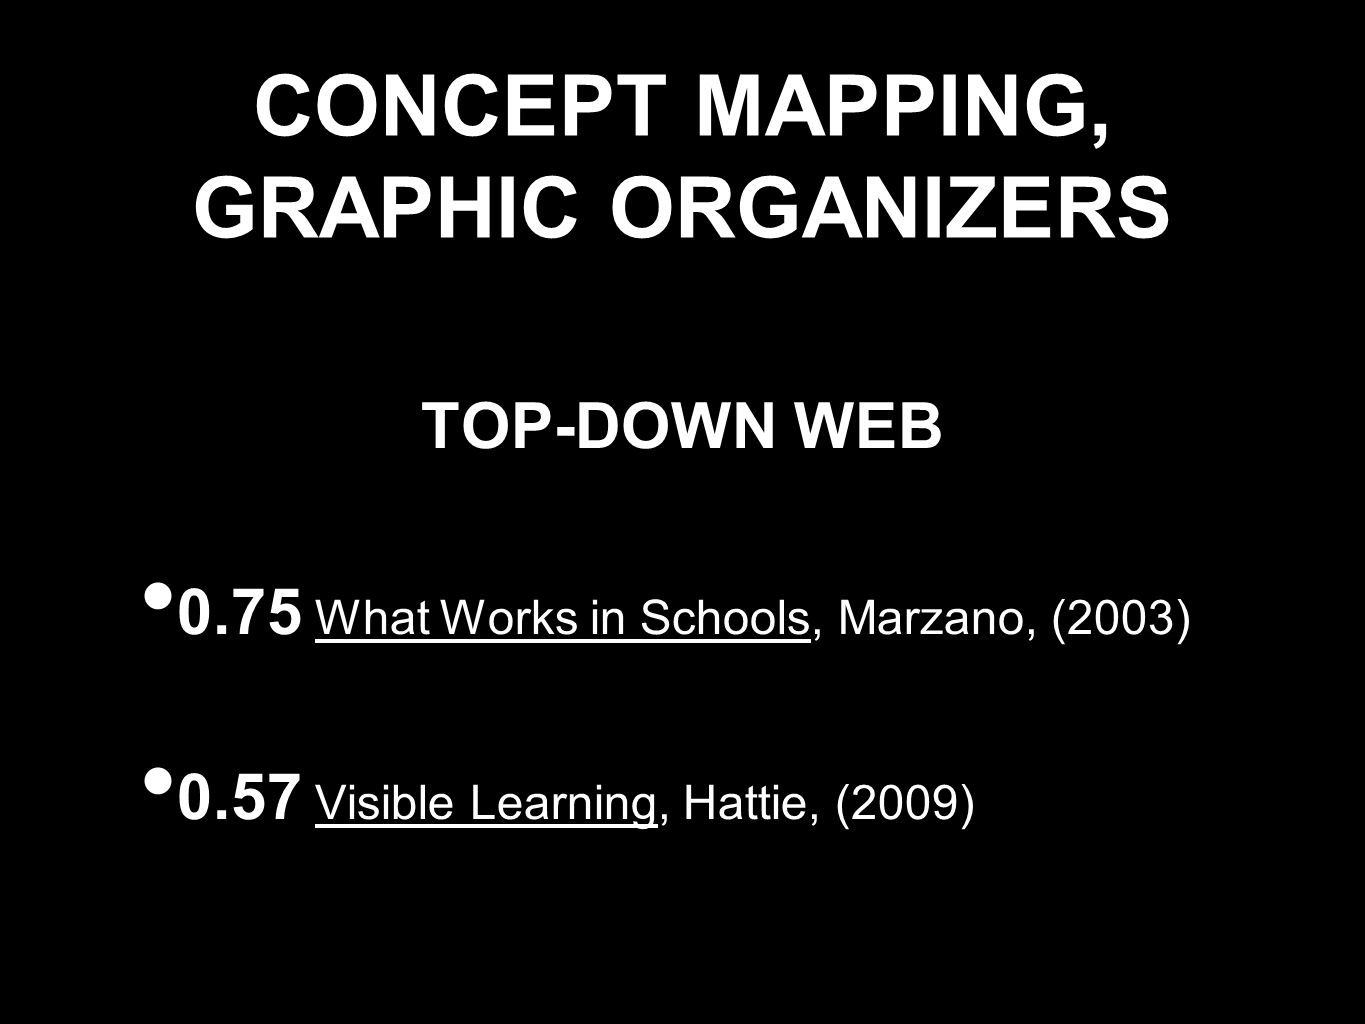 CONCEPT MAPPING, GRAPHIC ORGANIZERS TOP-DOWN WEB 0.75 What Works in Schools, Marzano, (2003) 0.57 Visible Learning, Hattie, (2009)